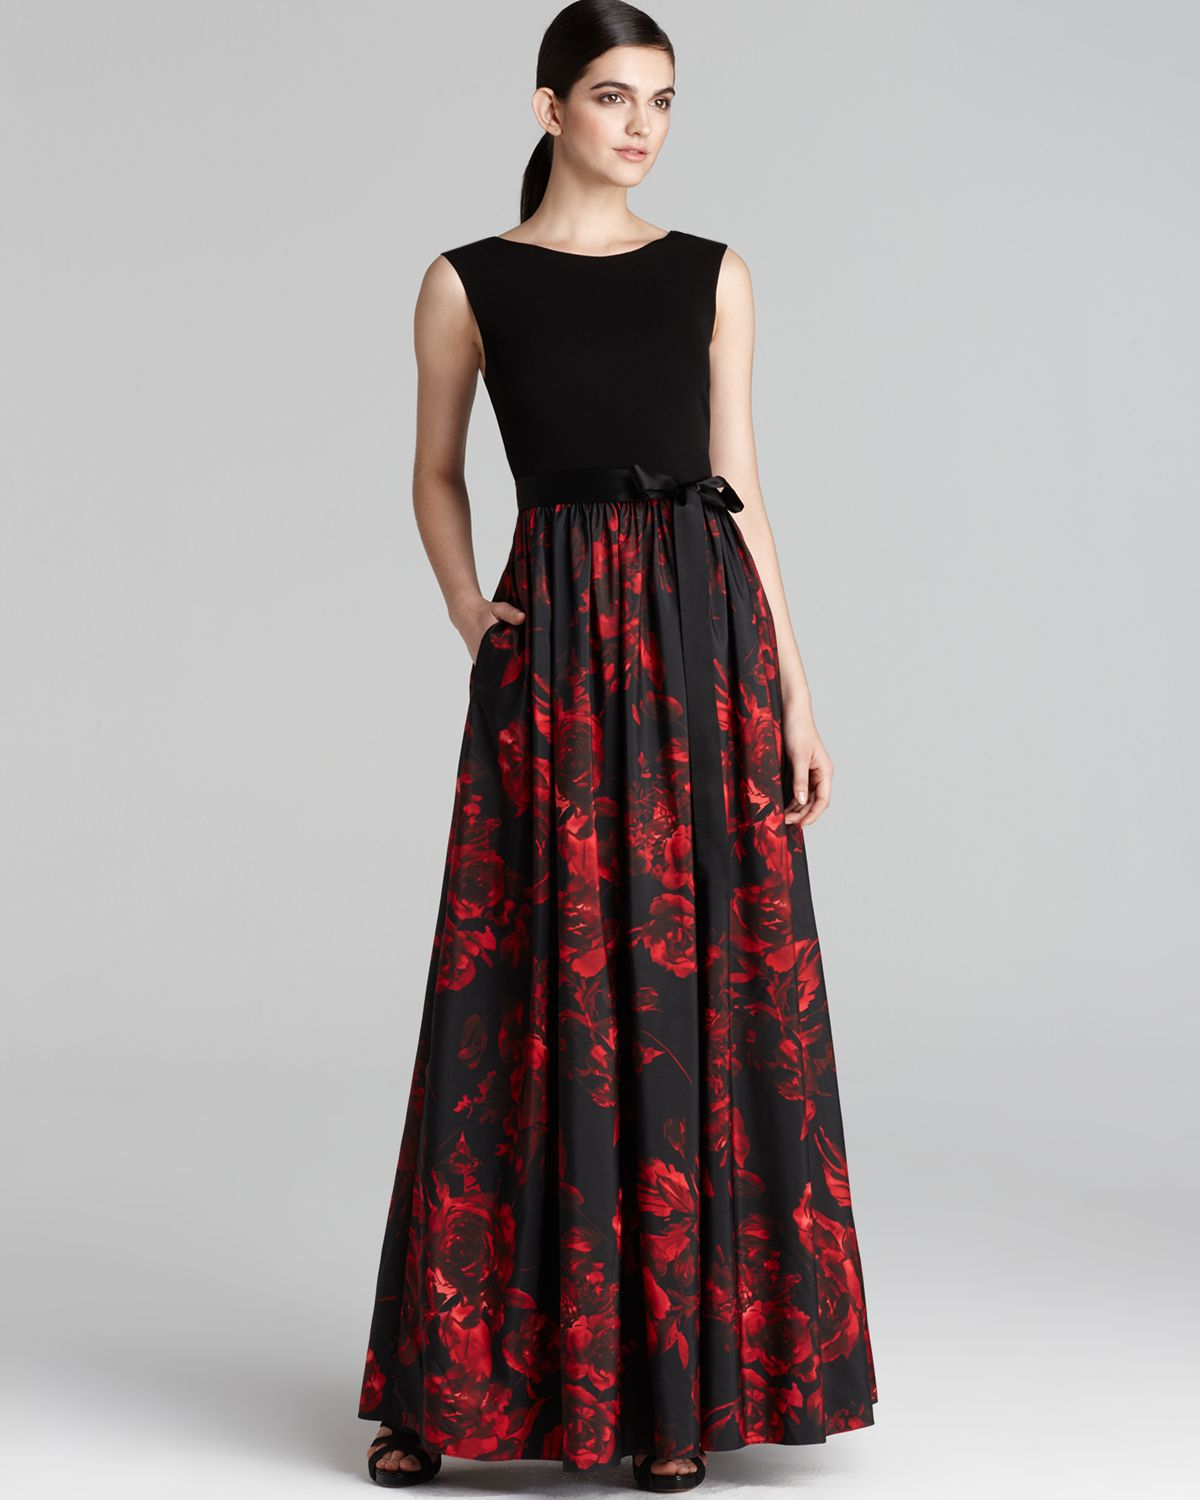 Lyst - Aidan Mattox Gown Sleeveless with Floral Printed Skirt in Black